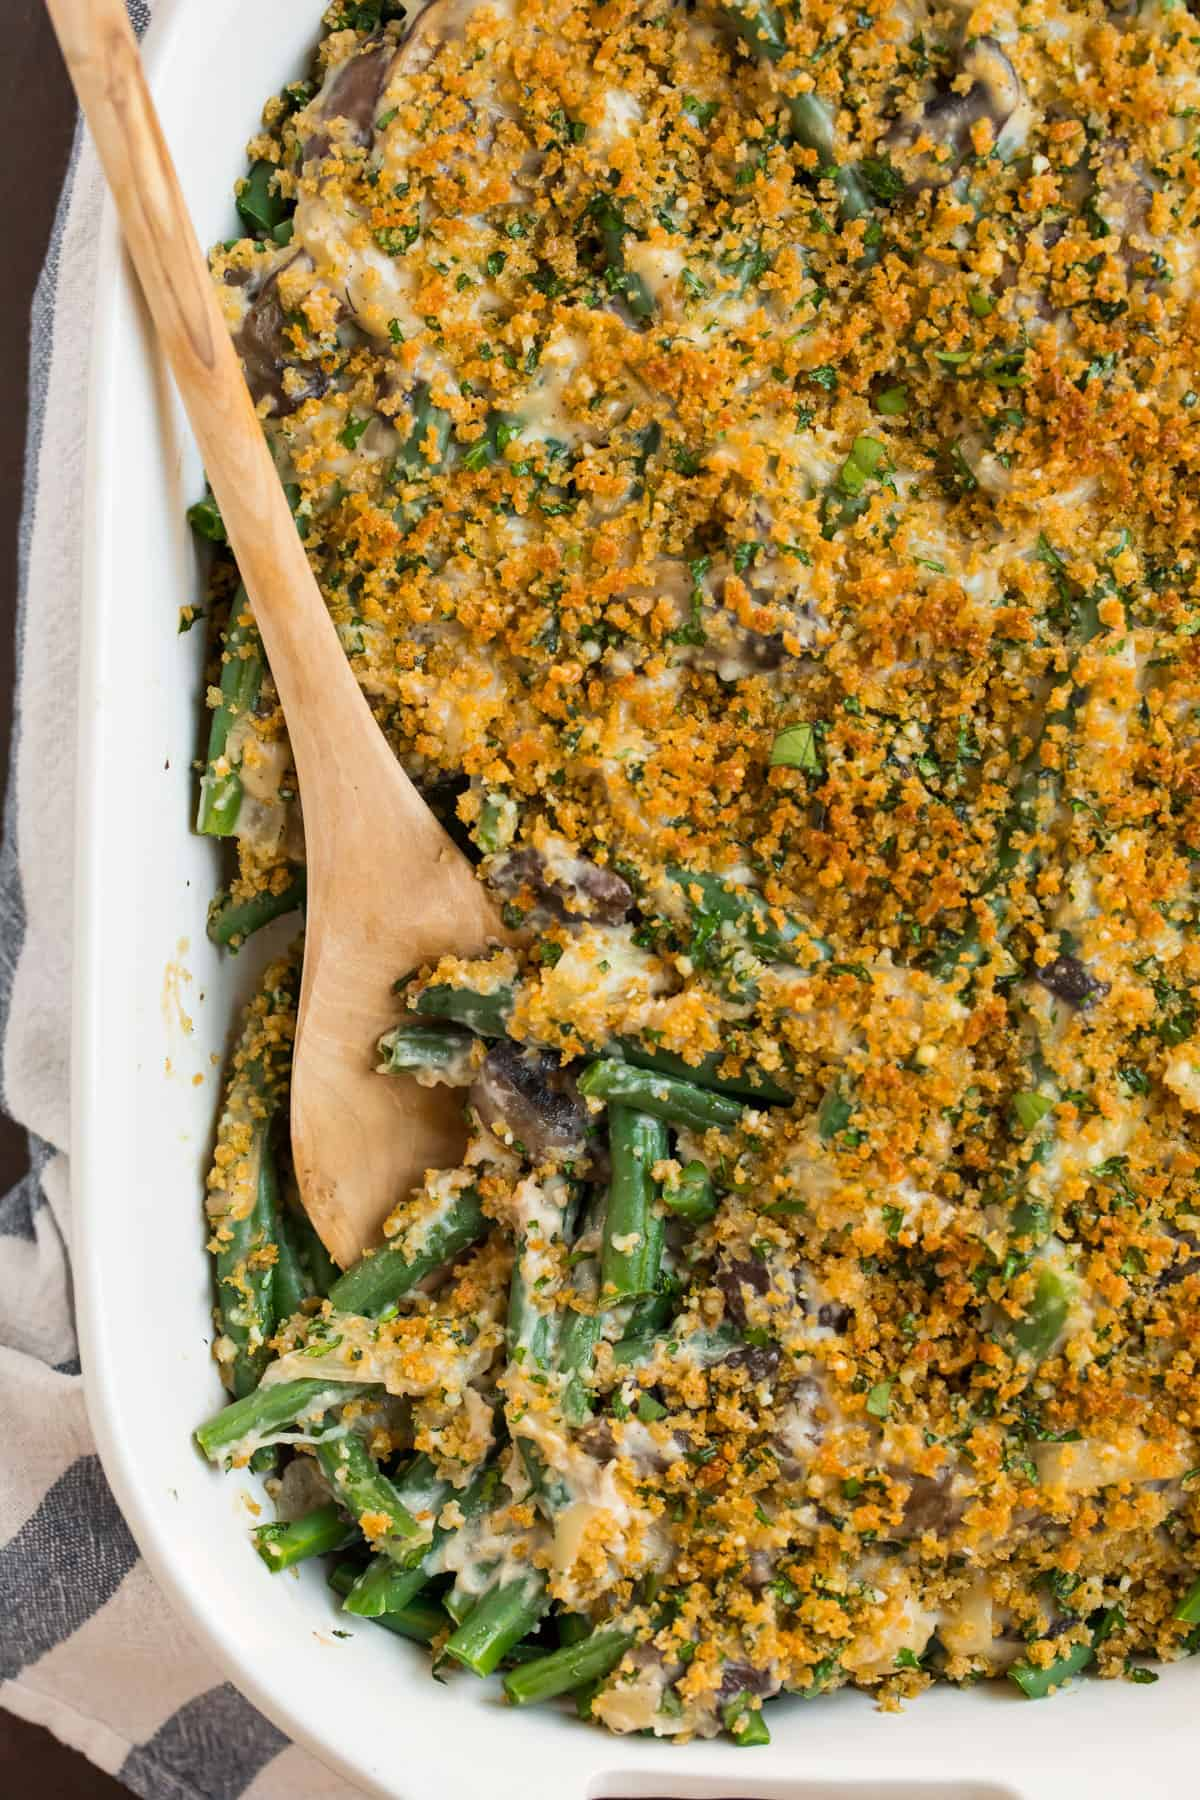 Healthy green bean casserole with cheese and breadcrumbs in a baking dish